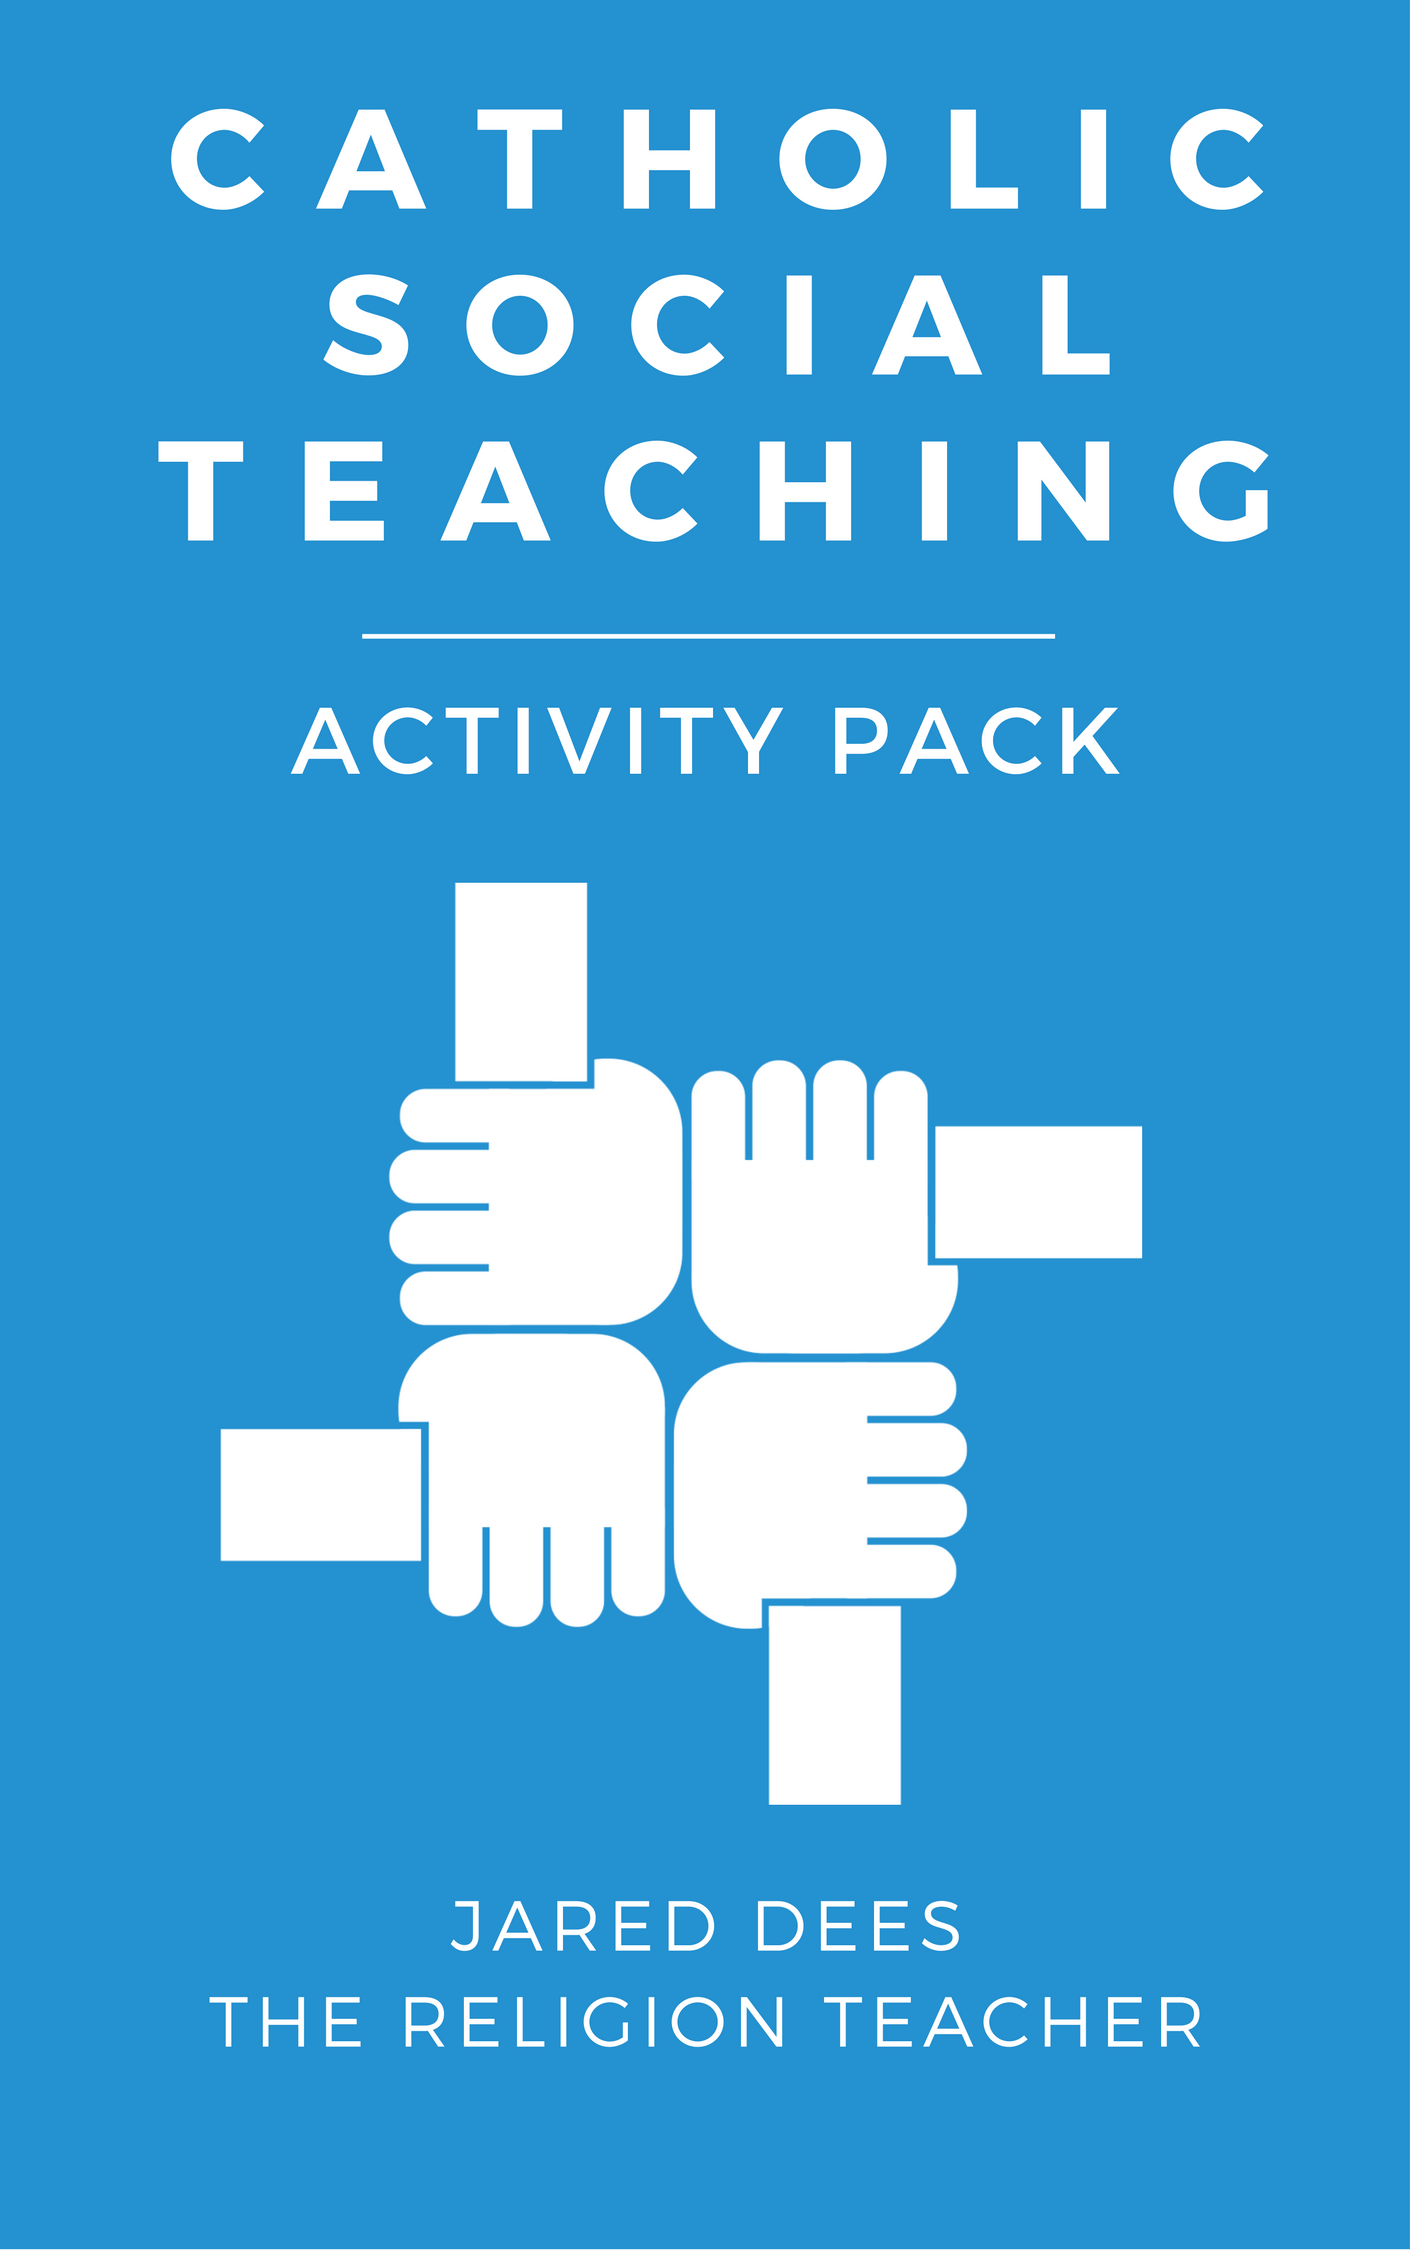 Pin On Catholic Social Teaching Activities